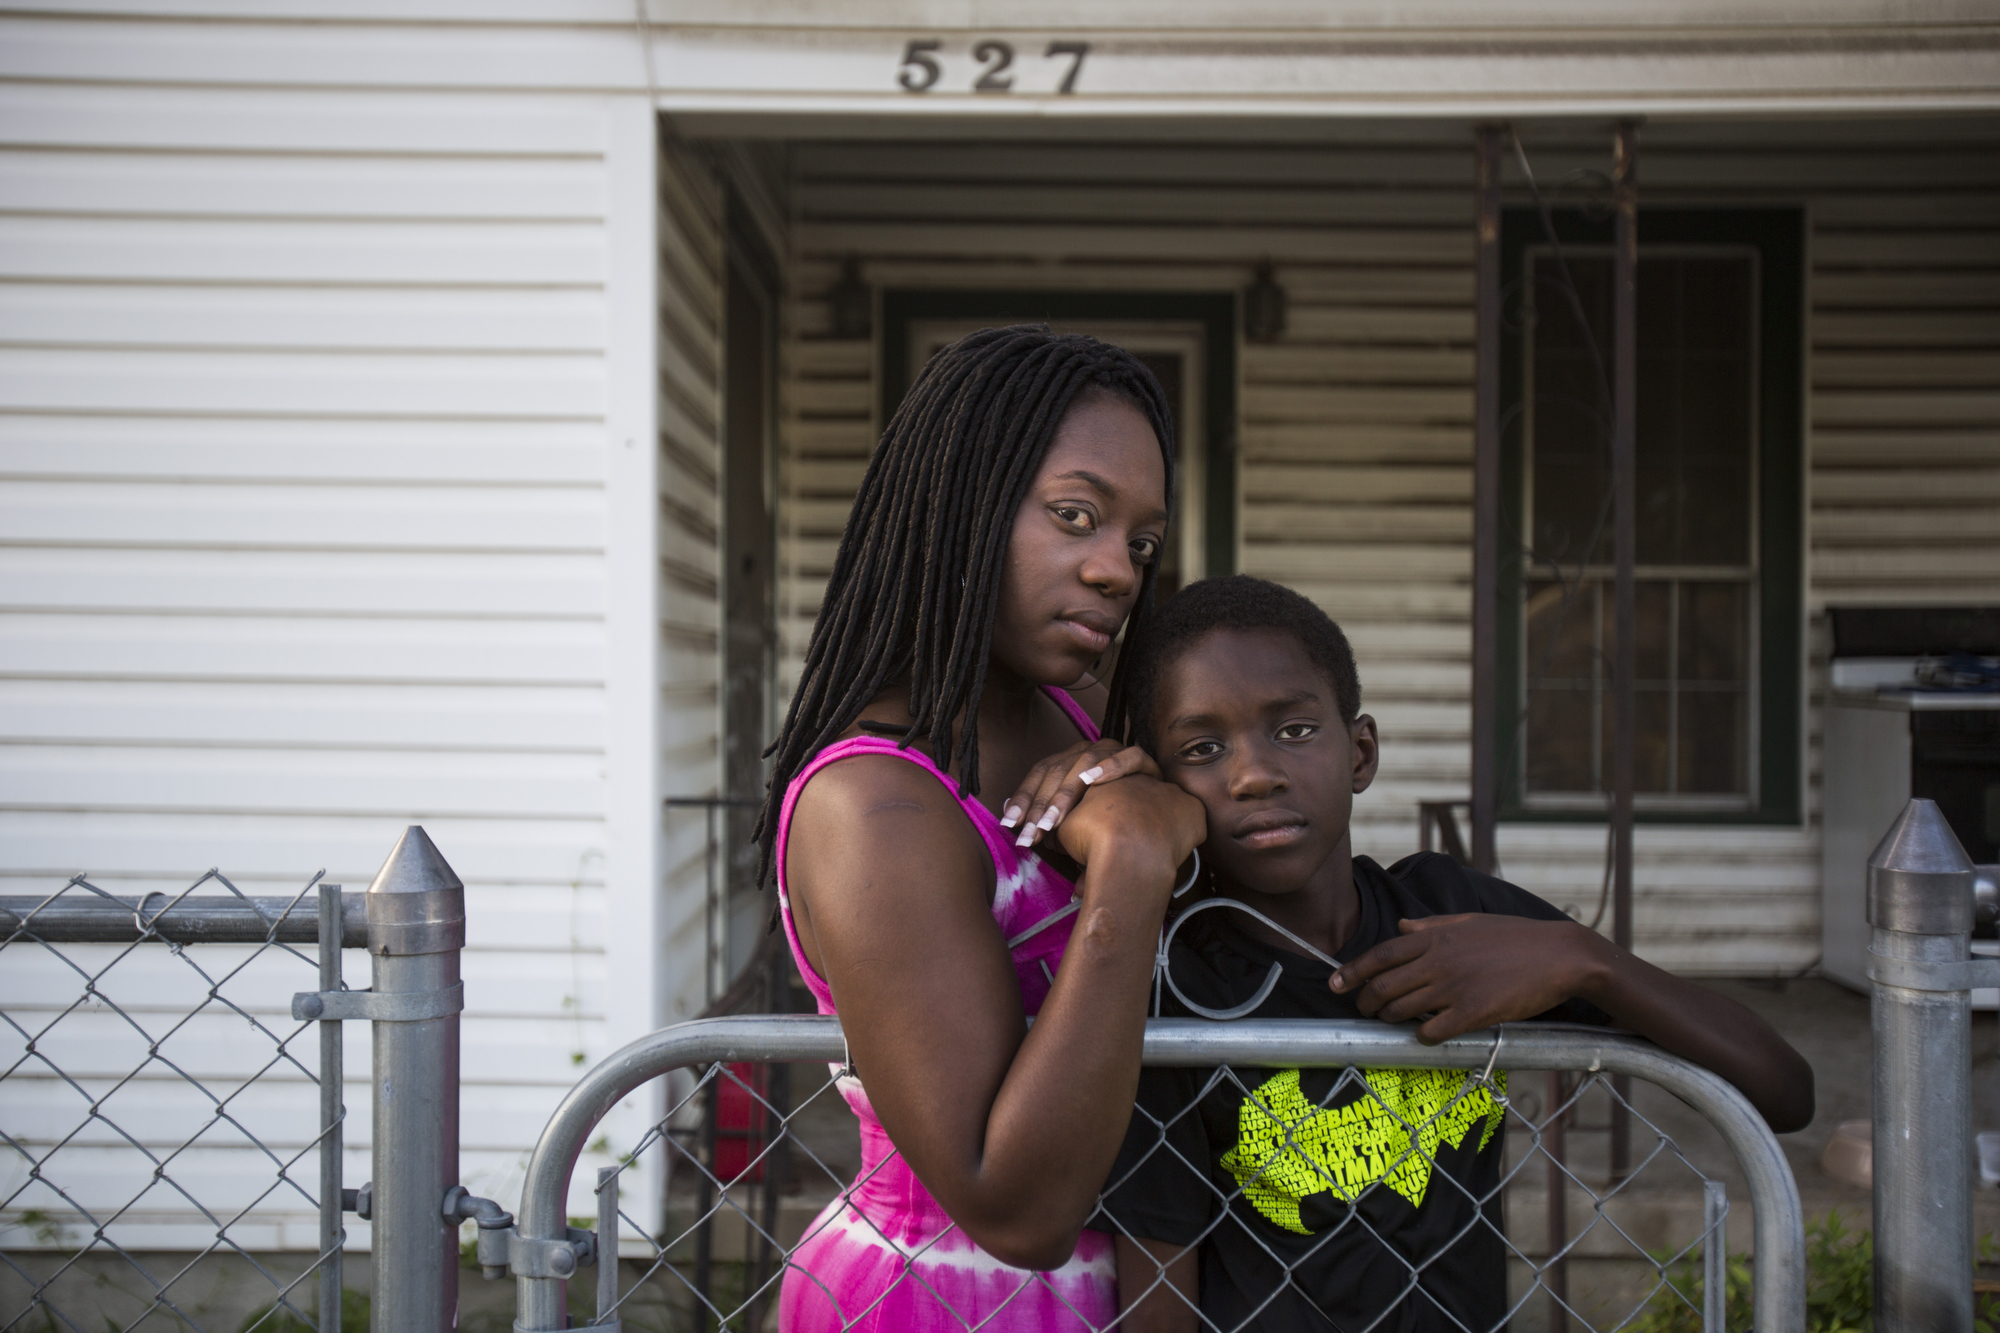 """Megan Blair, 31, a single mother, with her son William Navarro, 11, at their home in San Antonio on July 8, 2016. """"Our parents never had conversations with us about how to react when a cop pulled you over, you know what to say, where to keep your hands and now I'm having those conversations with him,"""" Blair said. """"I don't feel like anyone deserves what we just recently saw in the media. However, I do tell him at your best you always wanna make sure that you don't draw attention to yourself, you know, always make sure that you look appropriate, make sure that your pants are hanging down. Like I said, that doesn't warrant somebody being killed but now days you kind of have to."""""""